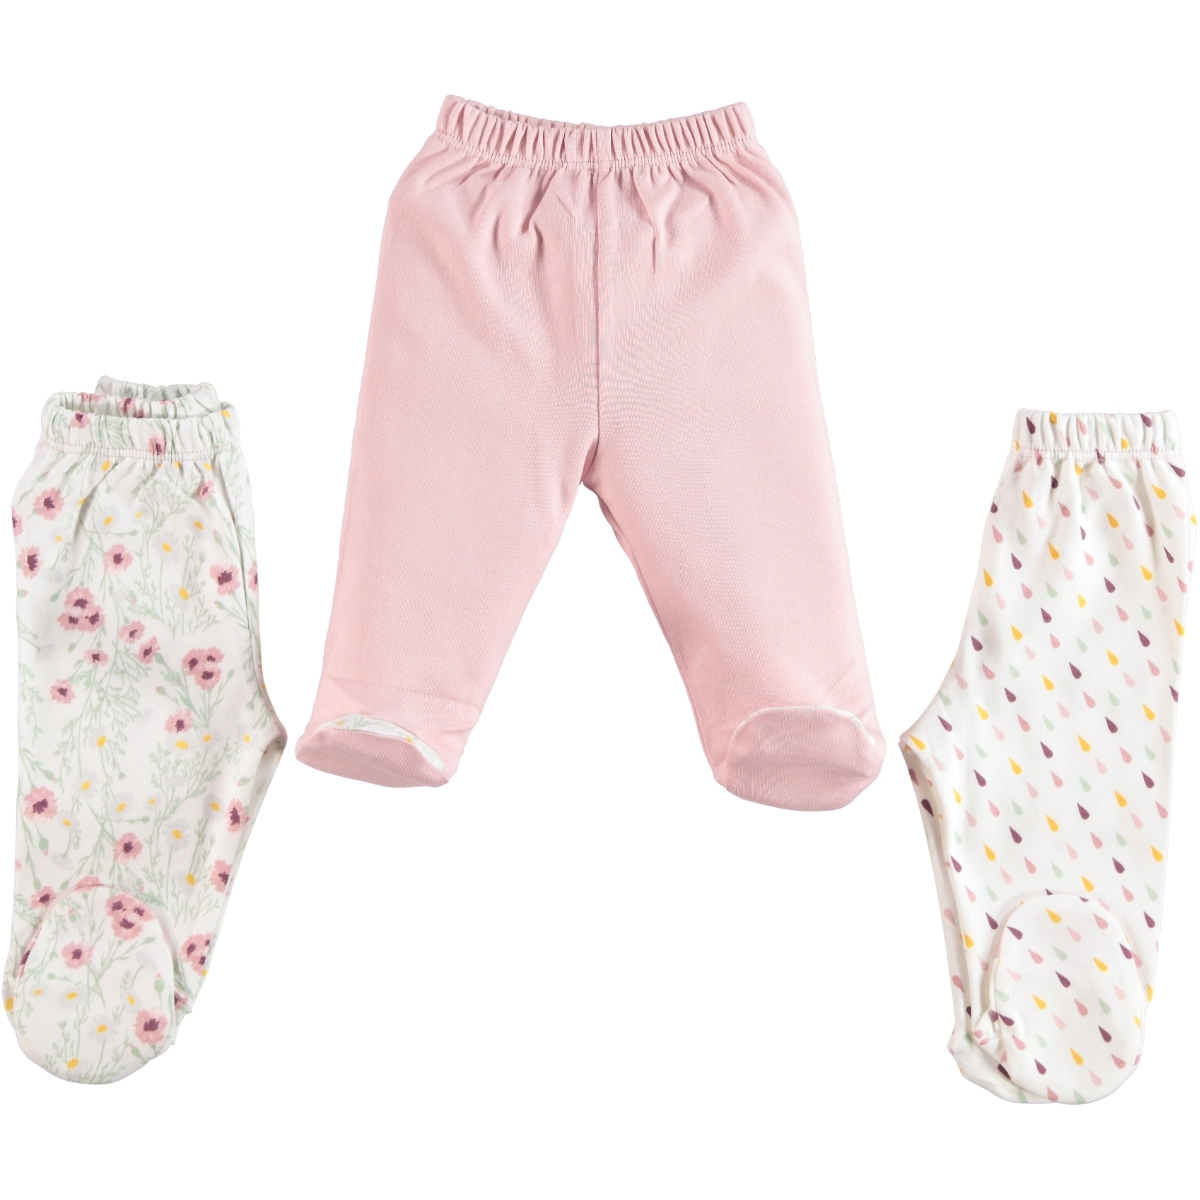 Misket Baby girls 3-baby booty powder pink 1-3 months, single child oh